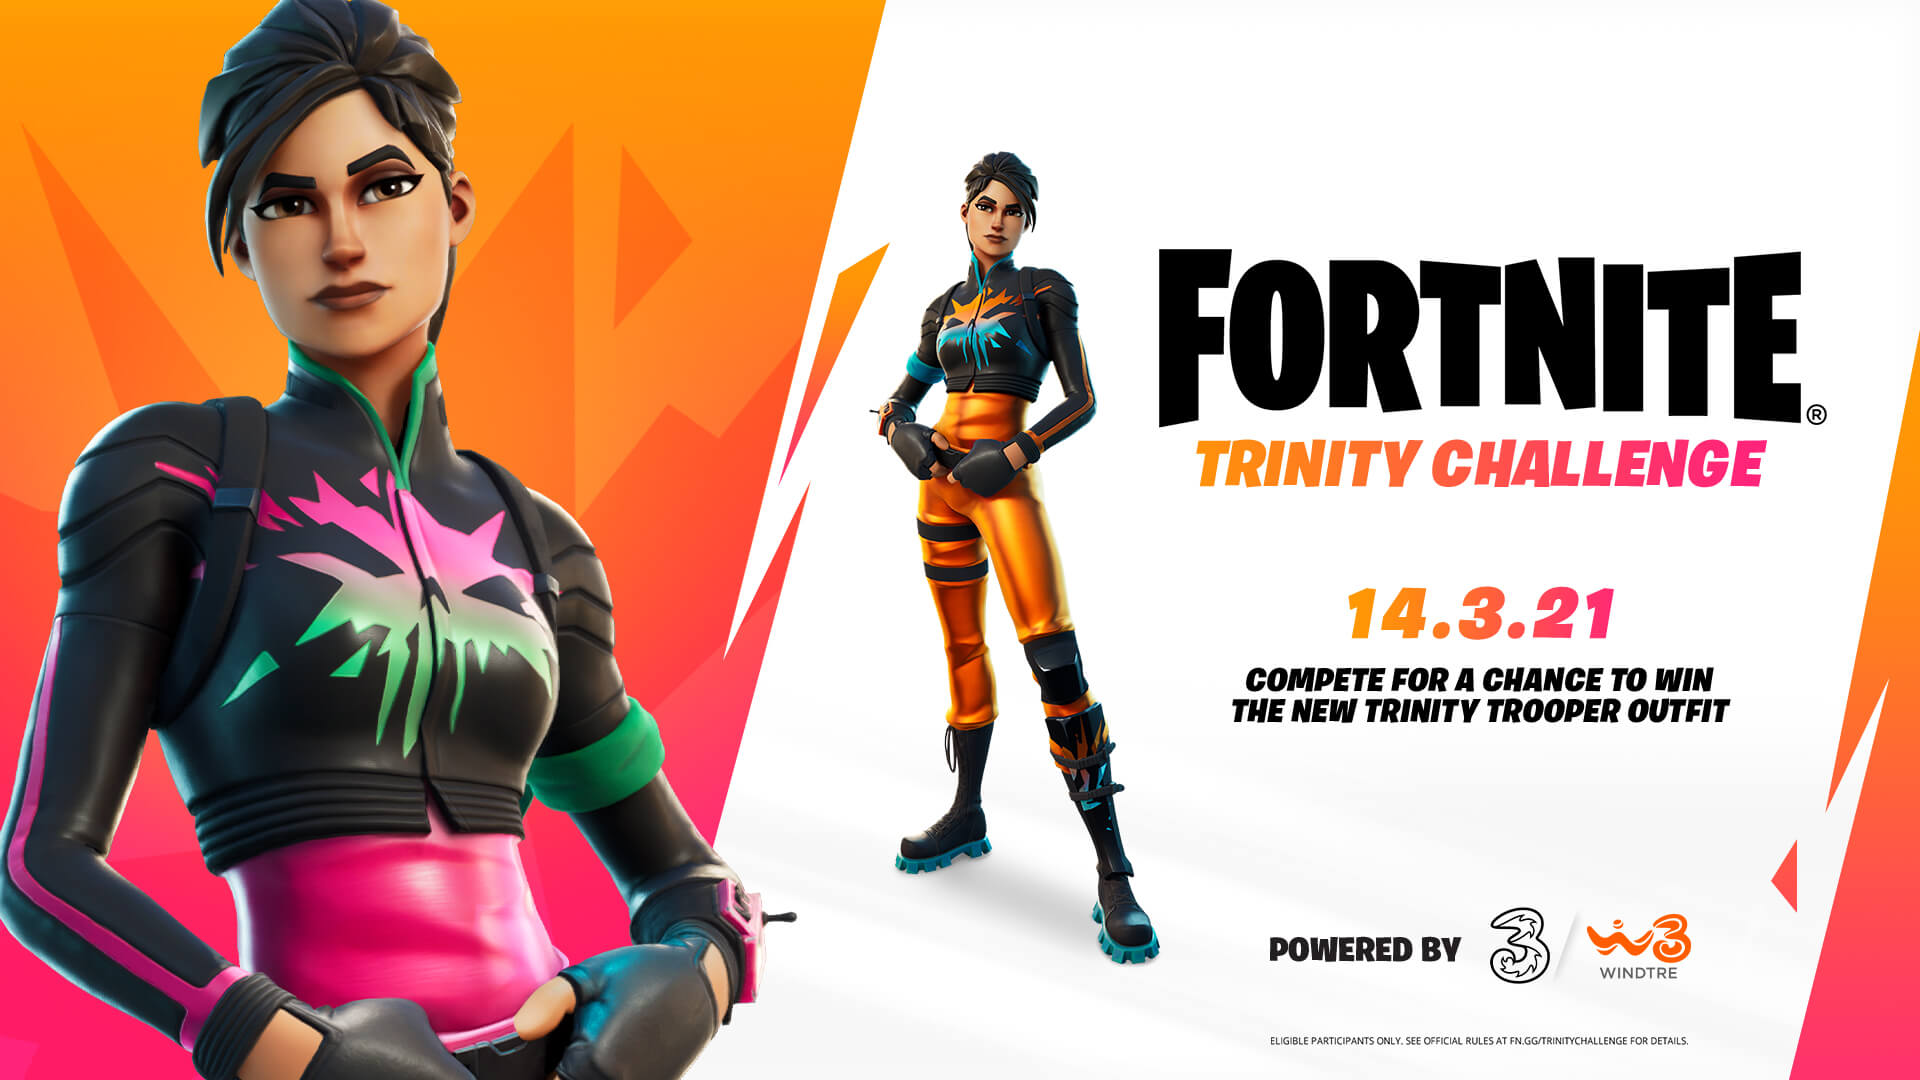 The Fortnite Trinity Challenge takes place March 14, presented by Three